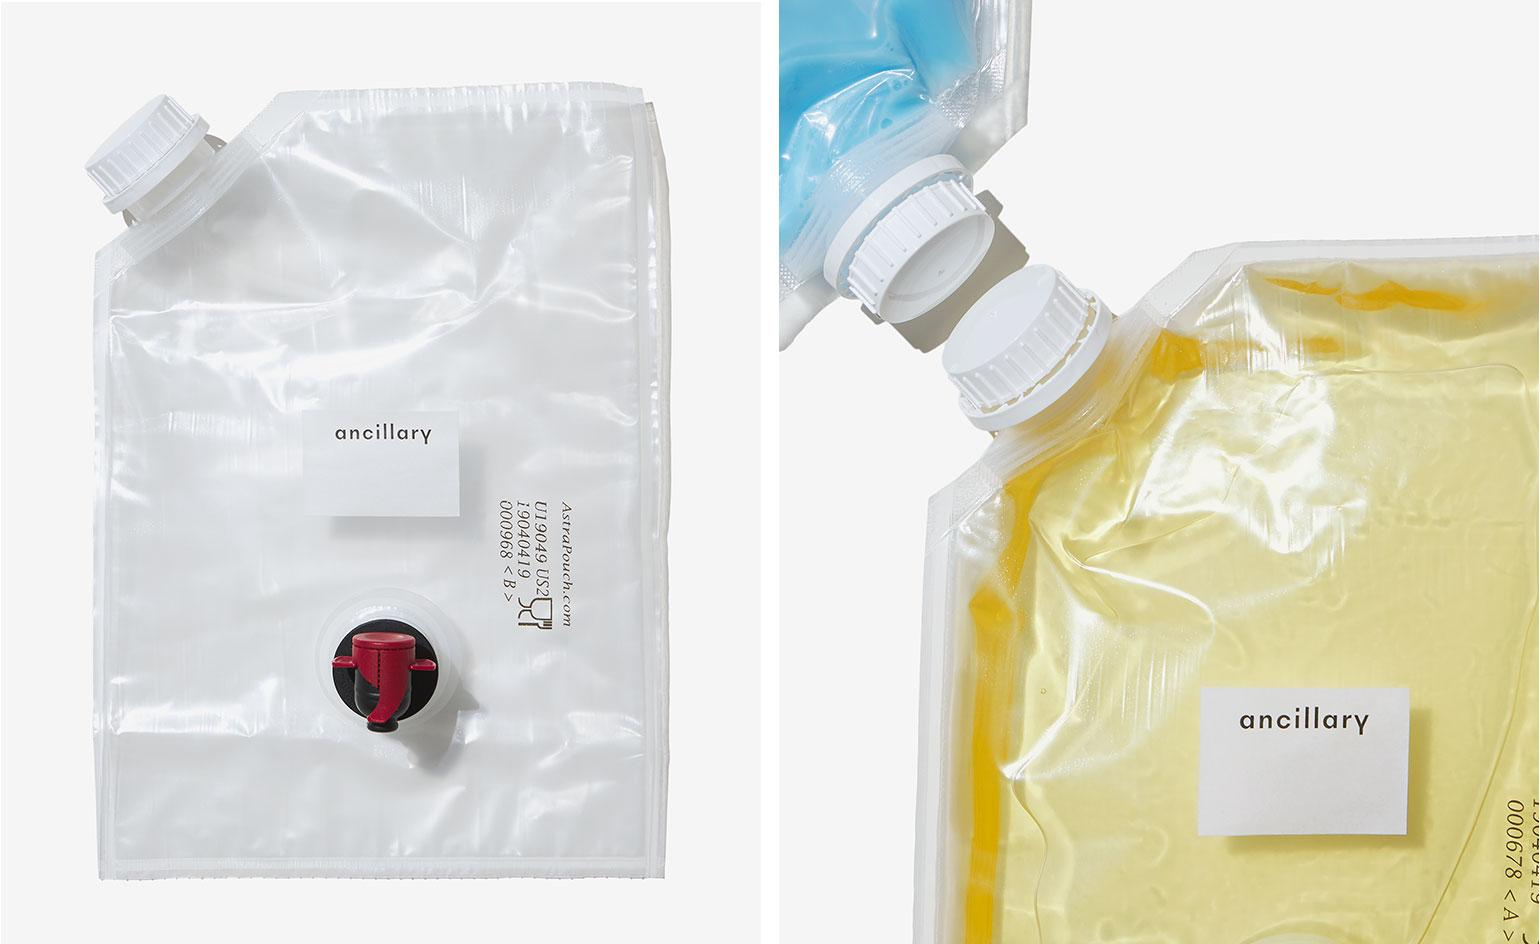 Eat up Ancillary Equipment's radical food storage solutions